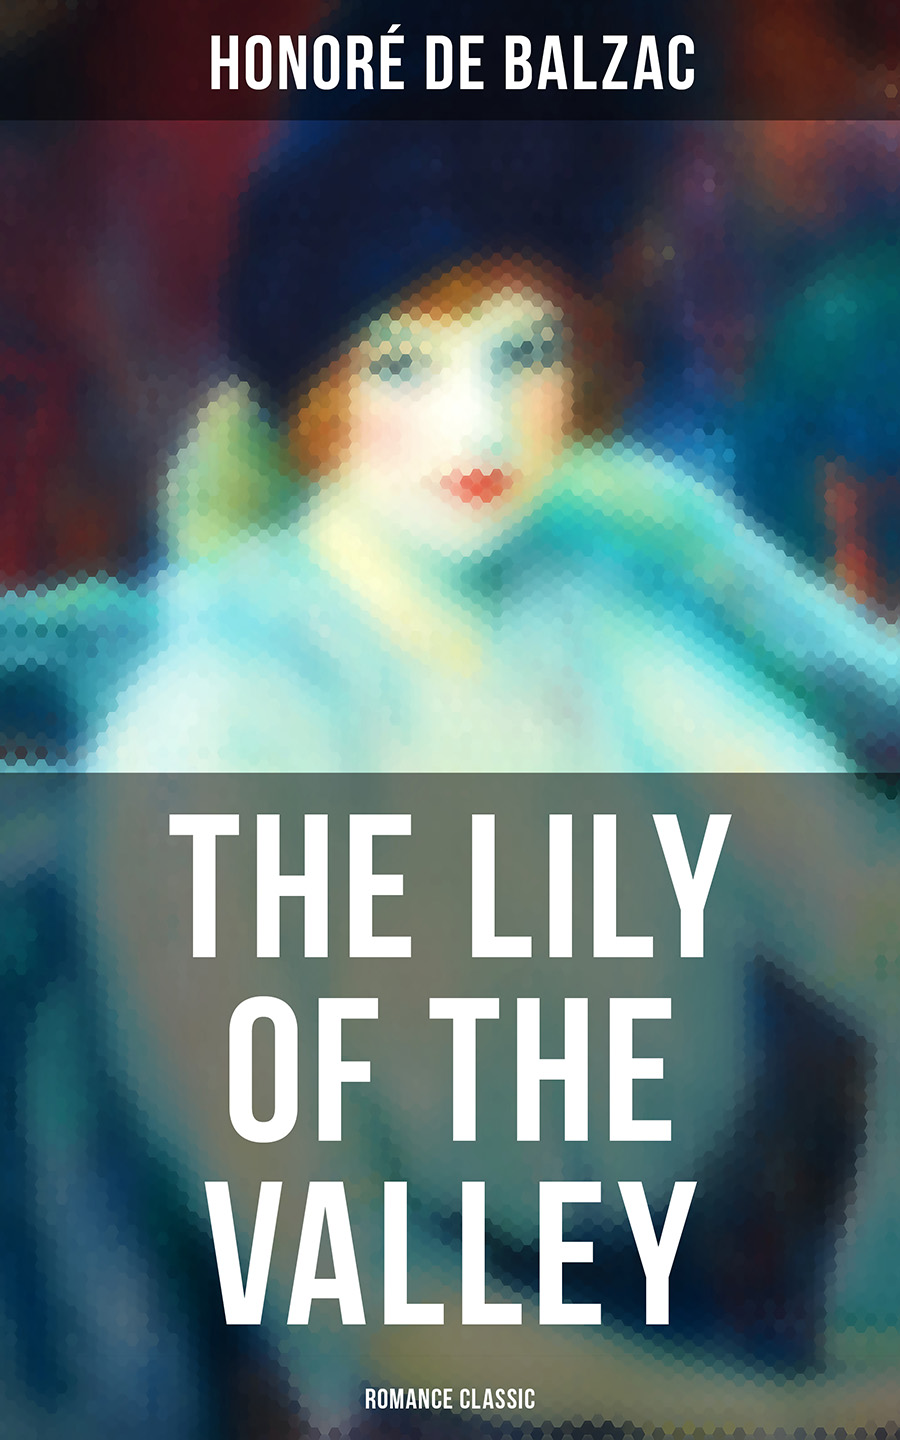 the lily of the valley romance classic